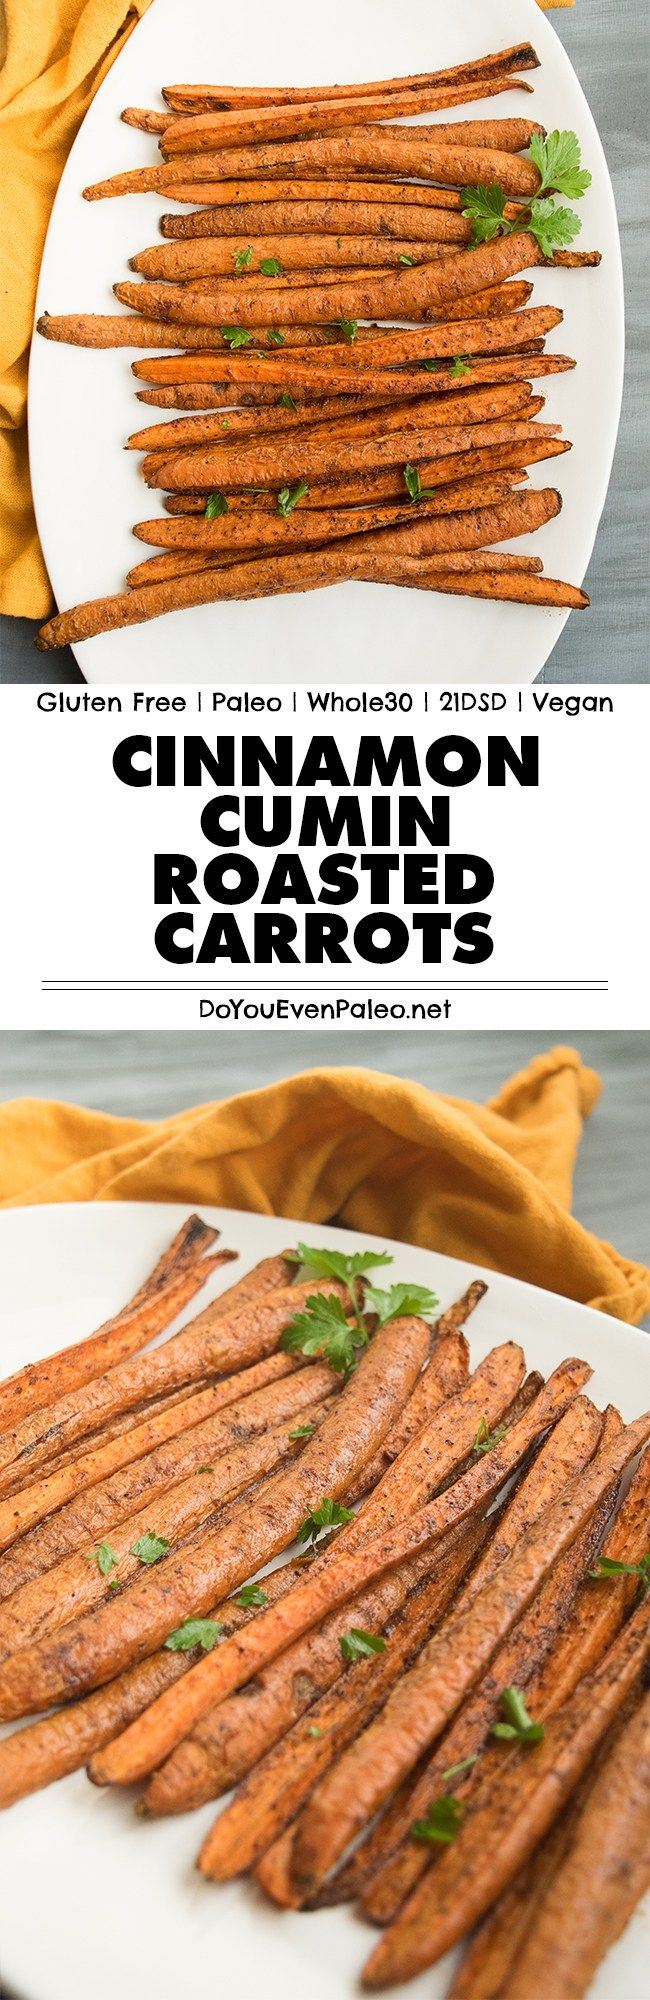 Cinnamon Cumin Roasted Carrots - this recipe makes for a quick and easy side dish with smoky, warm flavors. Gluten free, paleo, Whole30 and vegan! | DoYouEvenPaleo.net